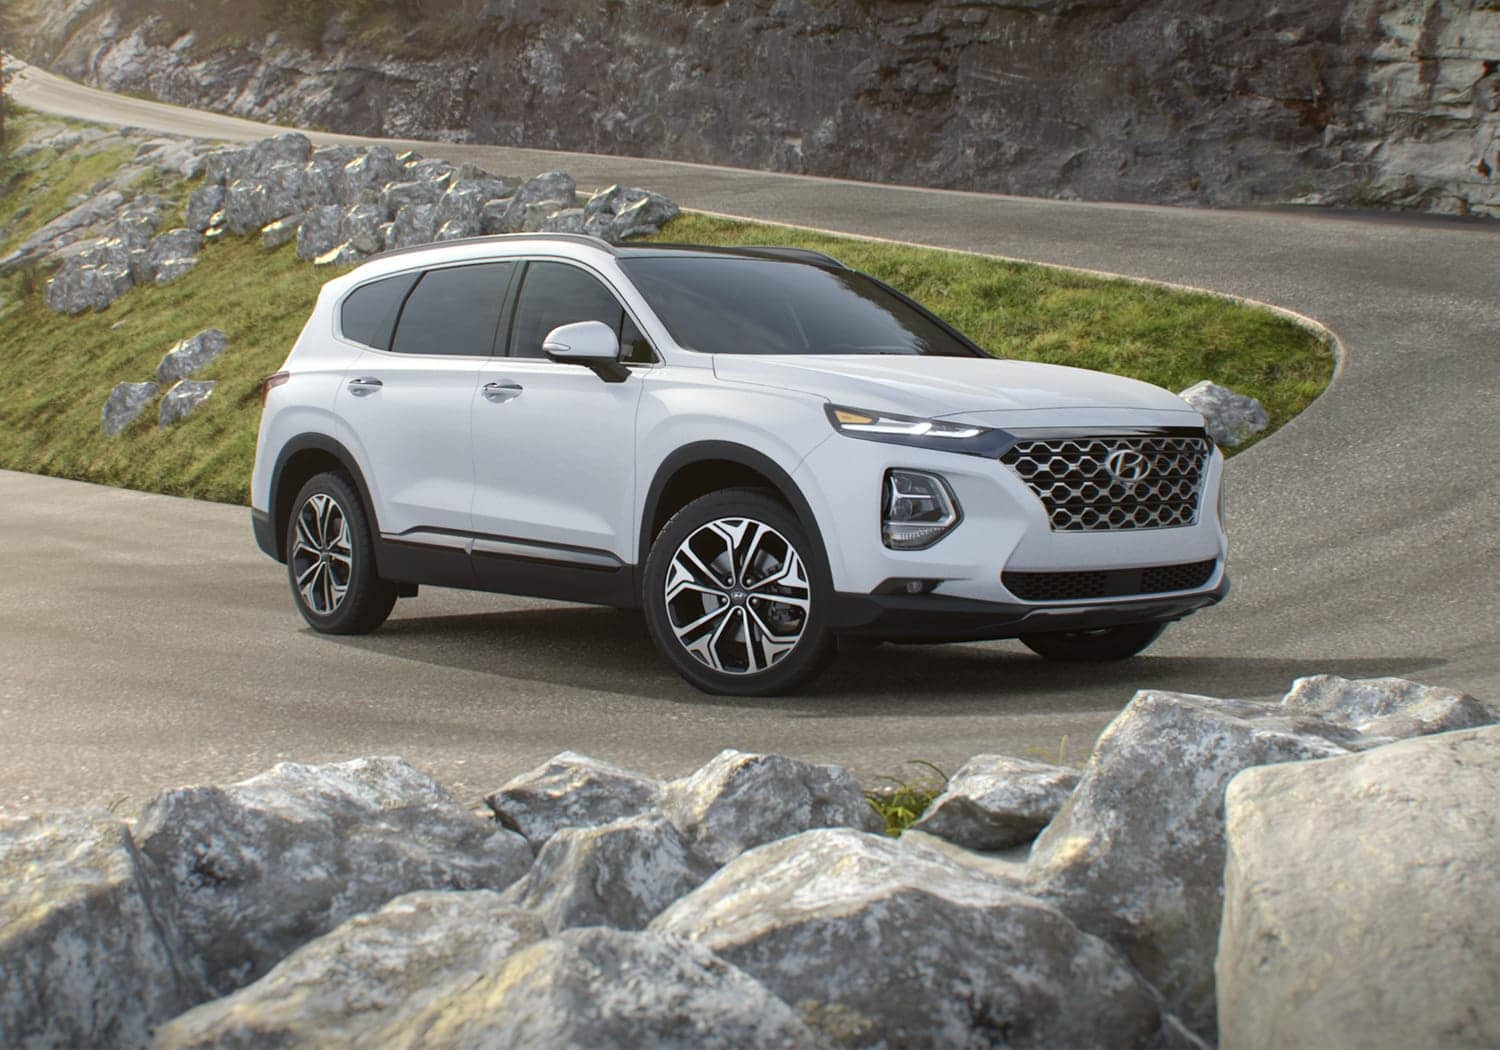 97 Best Review 2020 Hyundai Santa Fe Release Date Overview for 2020 Hyundai Santa Fe Release Date